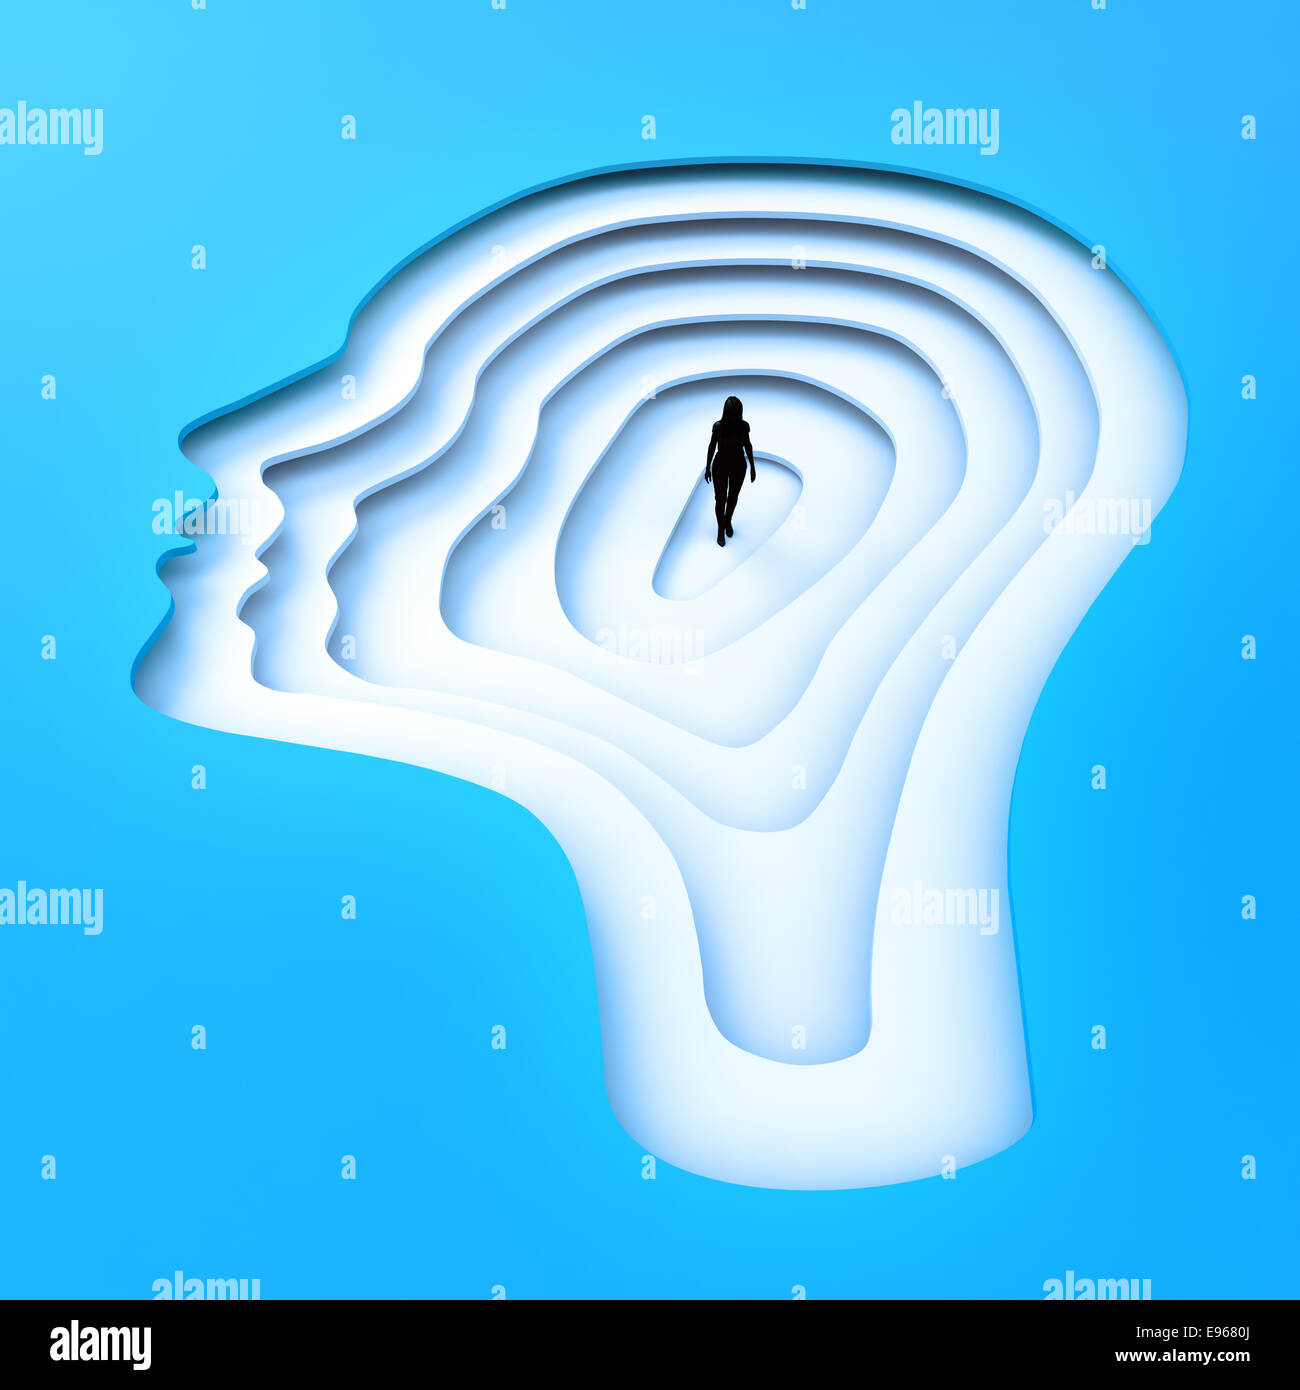 Tiny person standing inside a female head silhouette. - Stock Image